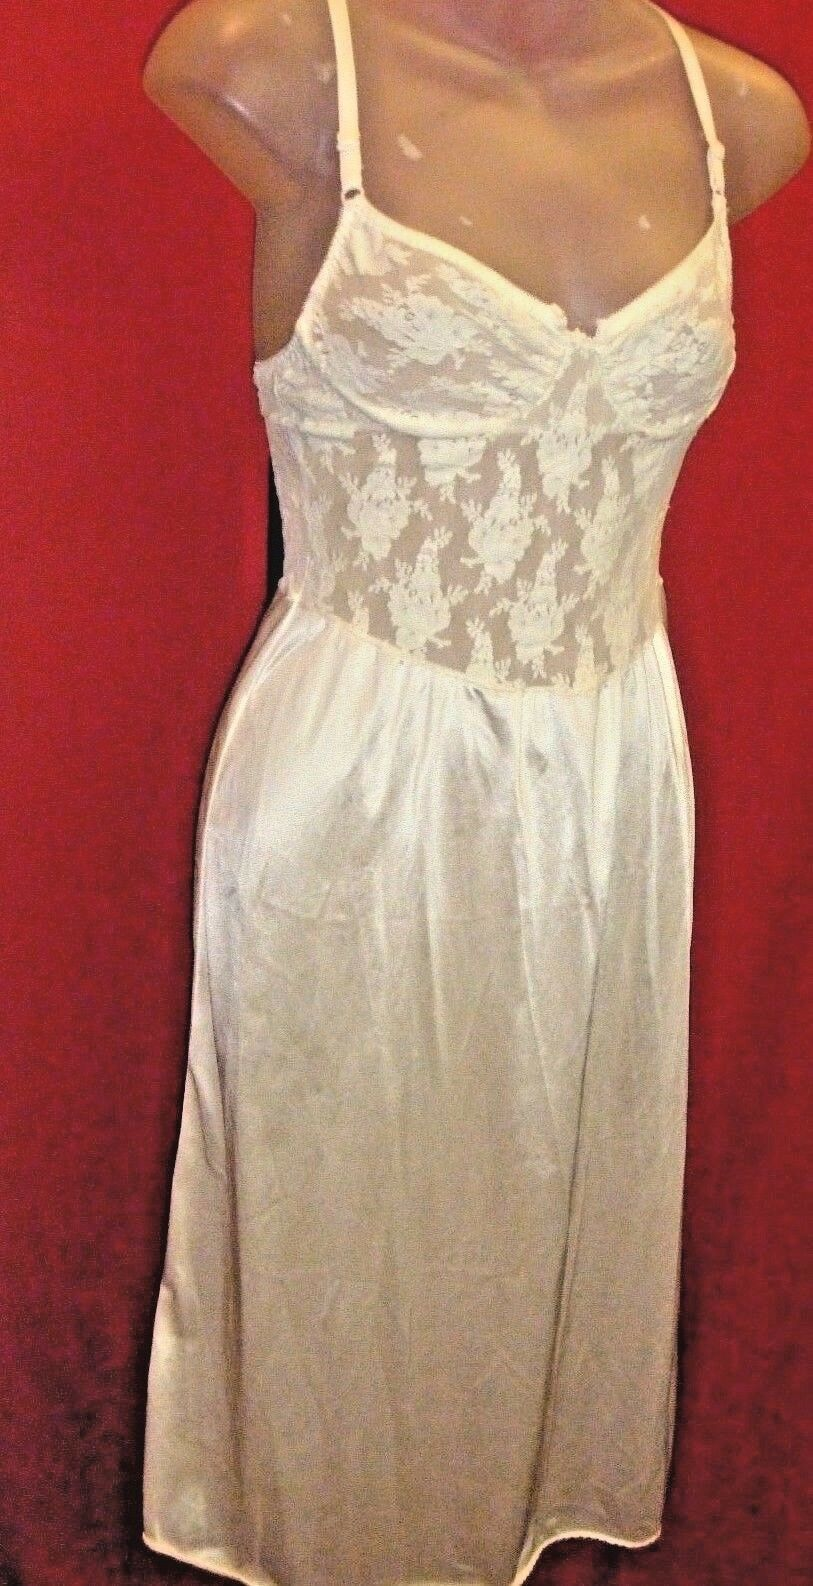 CHRISTIAN DIOR VINTAGE 70's Ivory pink Lace and satin Slip Dress Sz Small